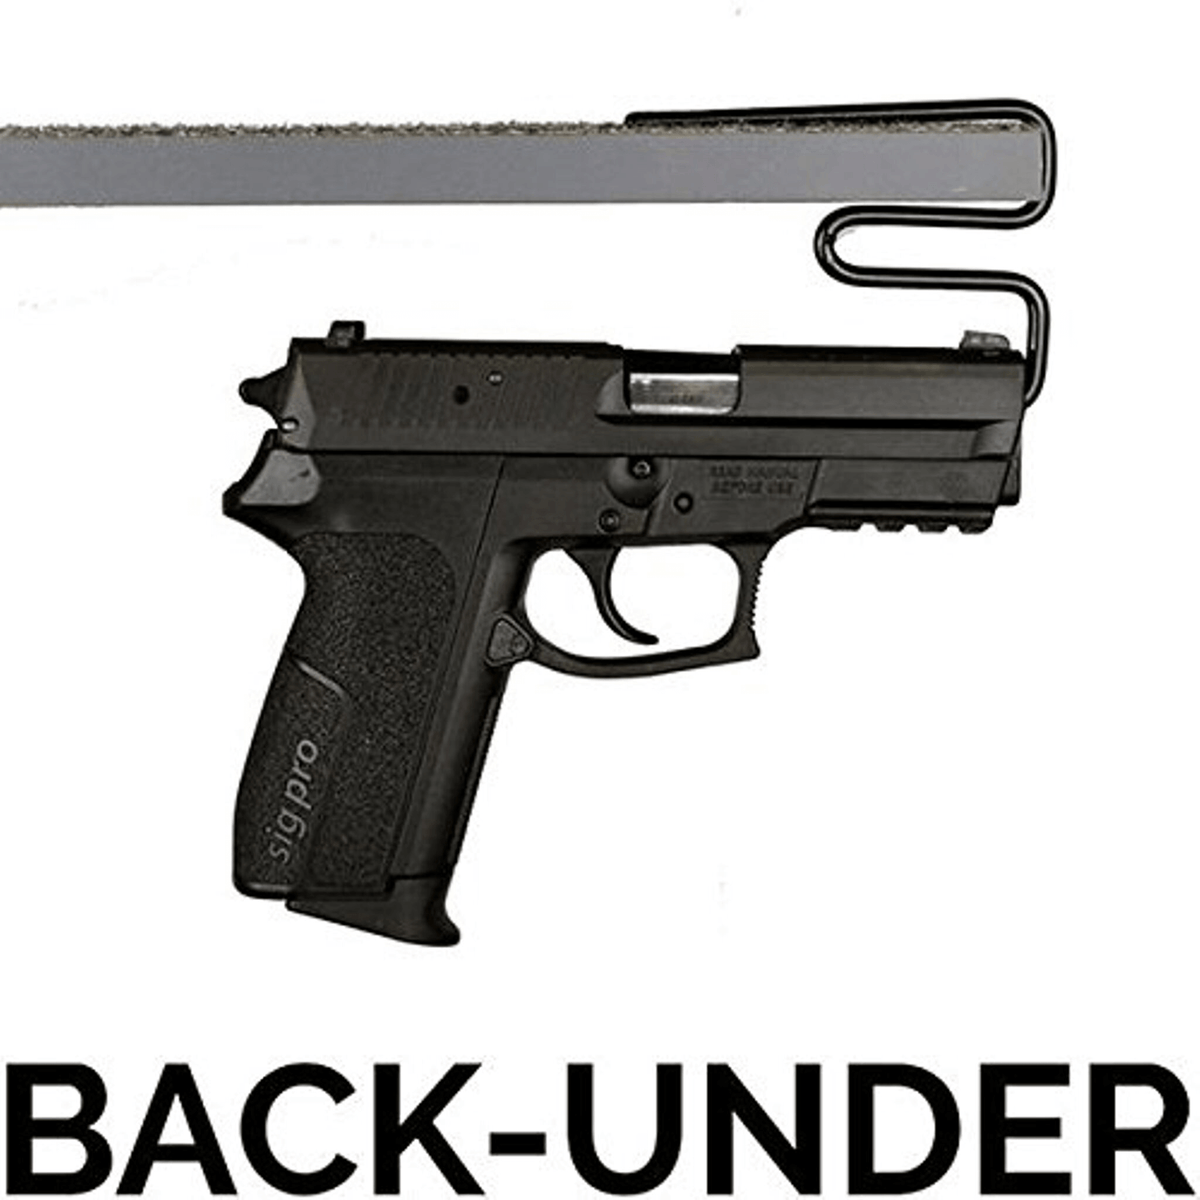 Accessory - Storage - Handgun Hanger - Back-Under - 2 pack